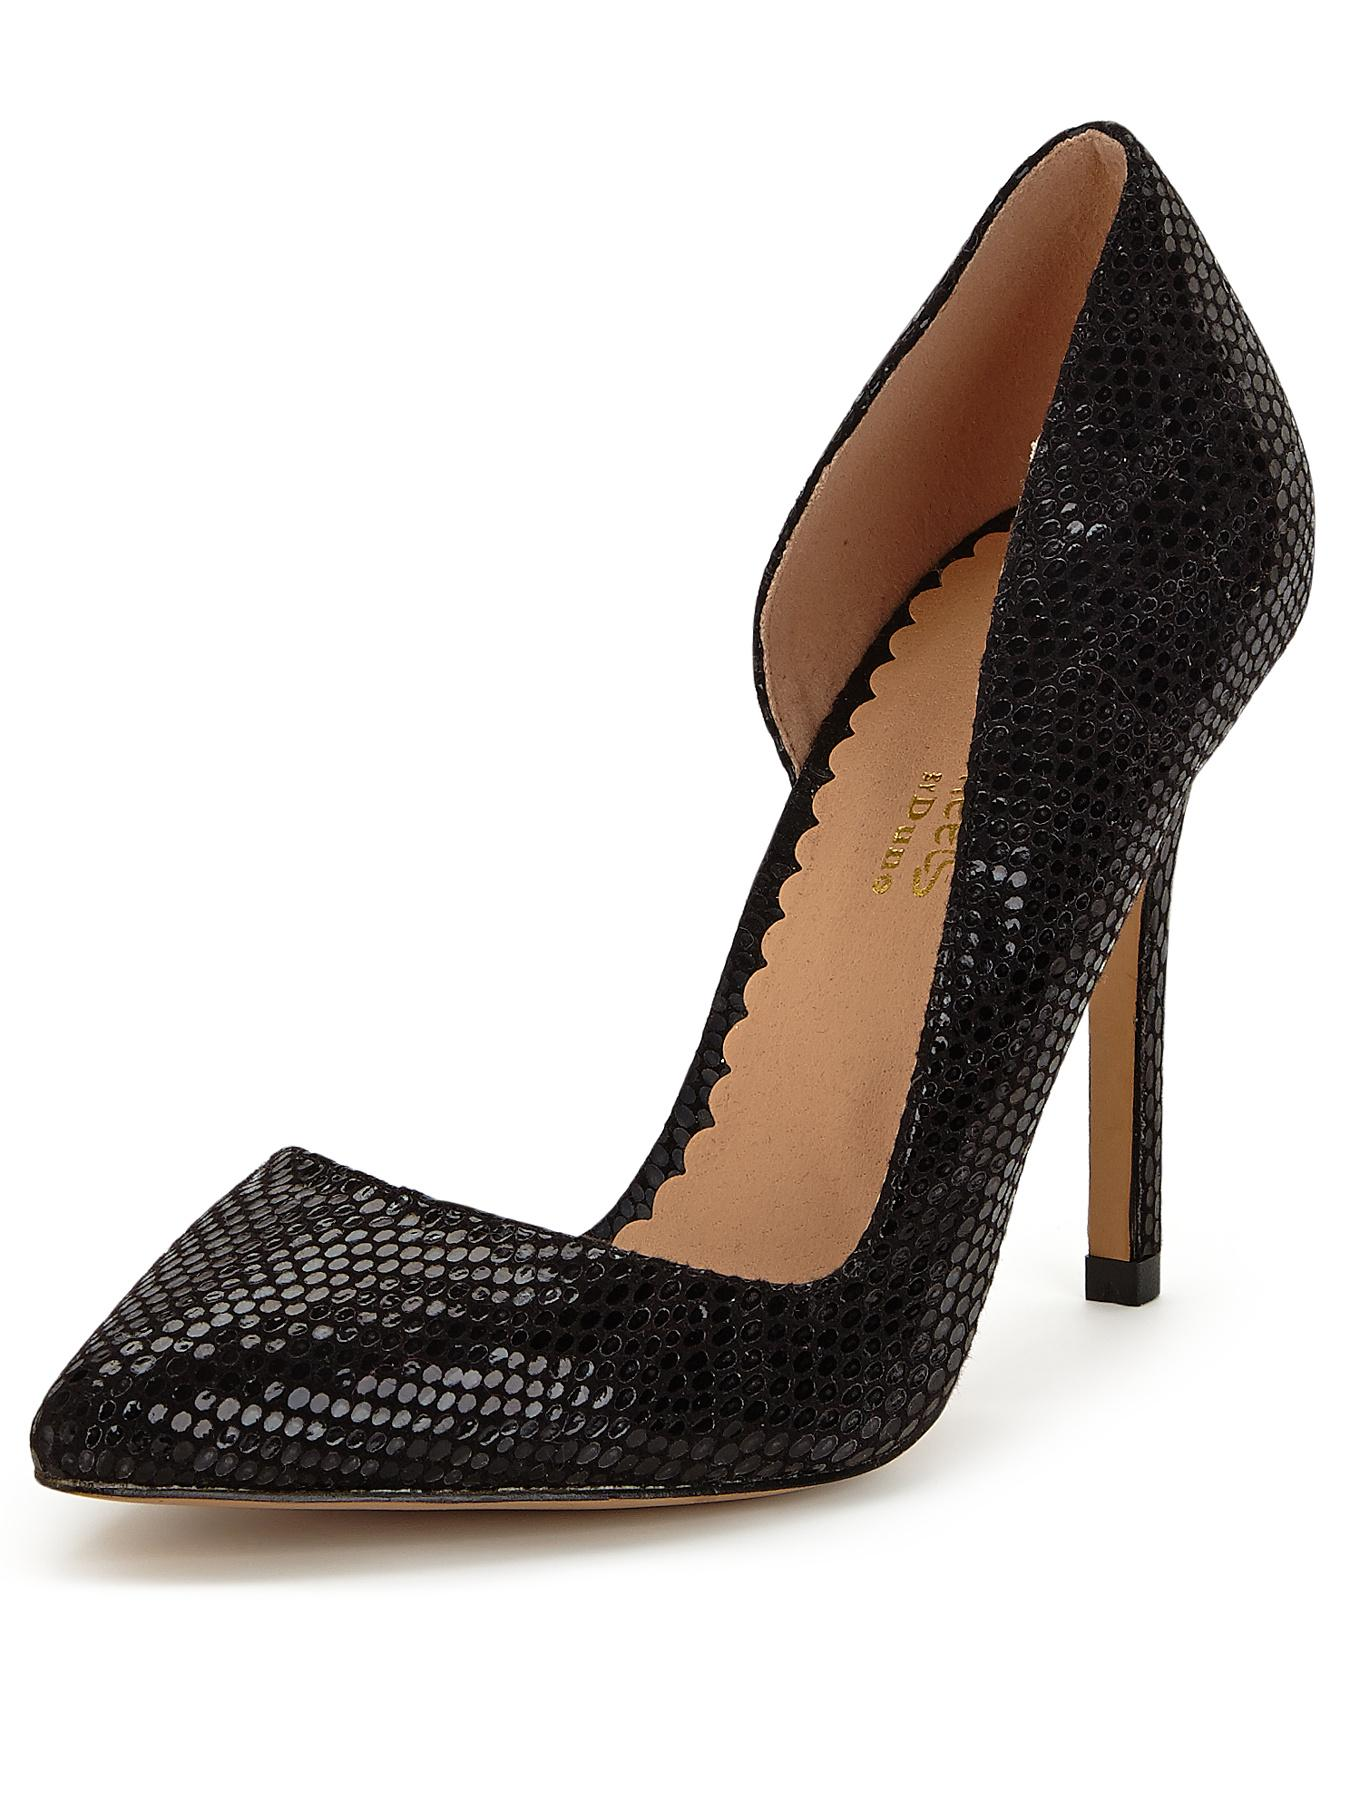 Head Over Heels Clarris Pointed Court Shoes - Black, Black